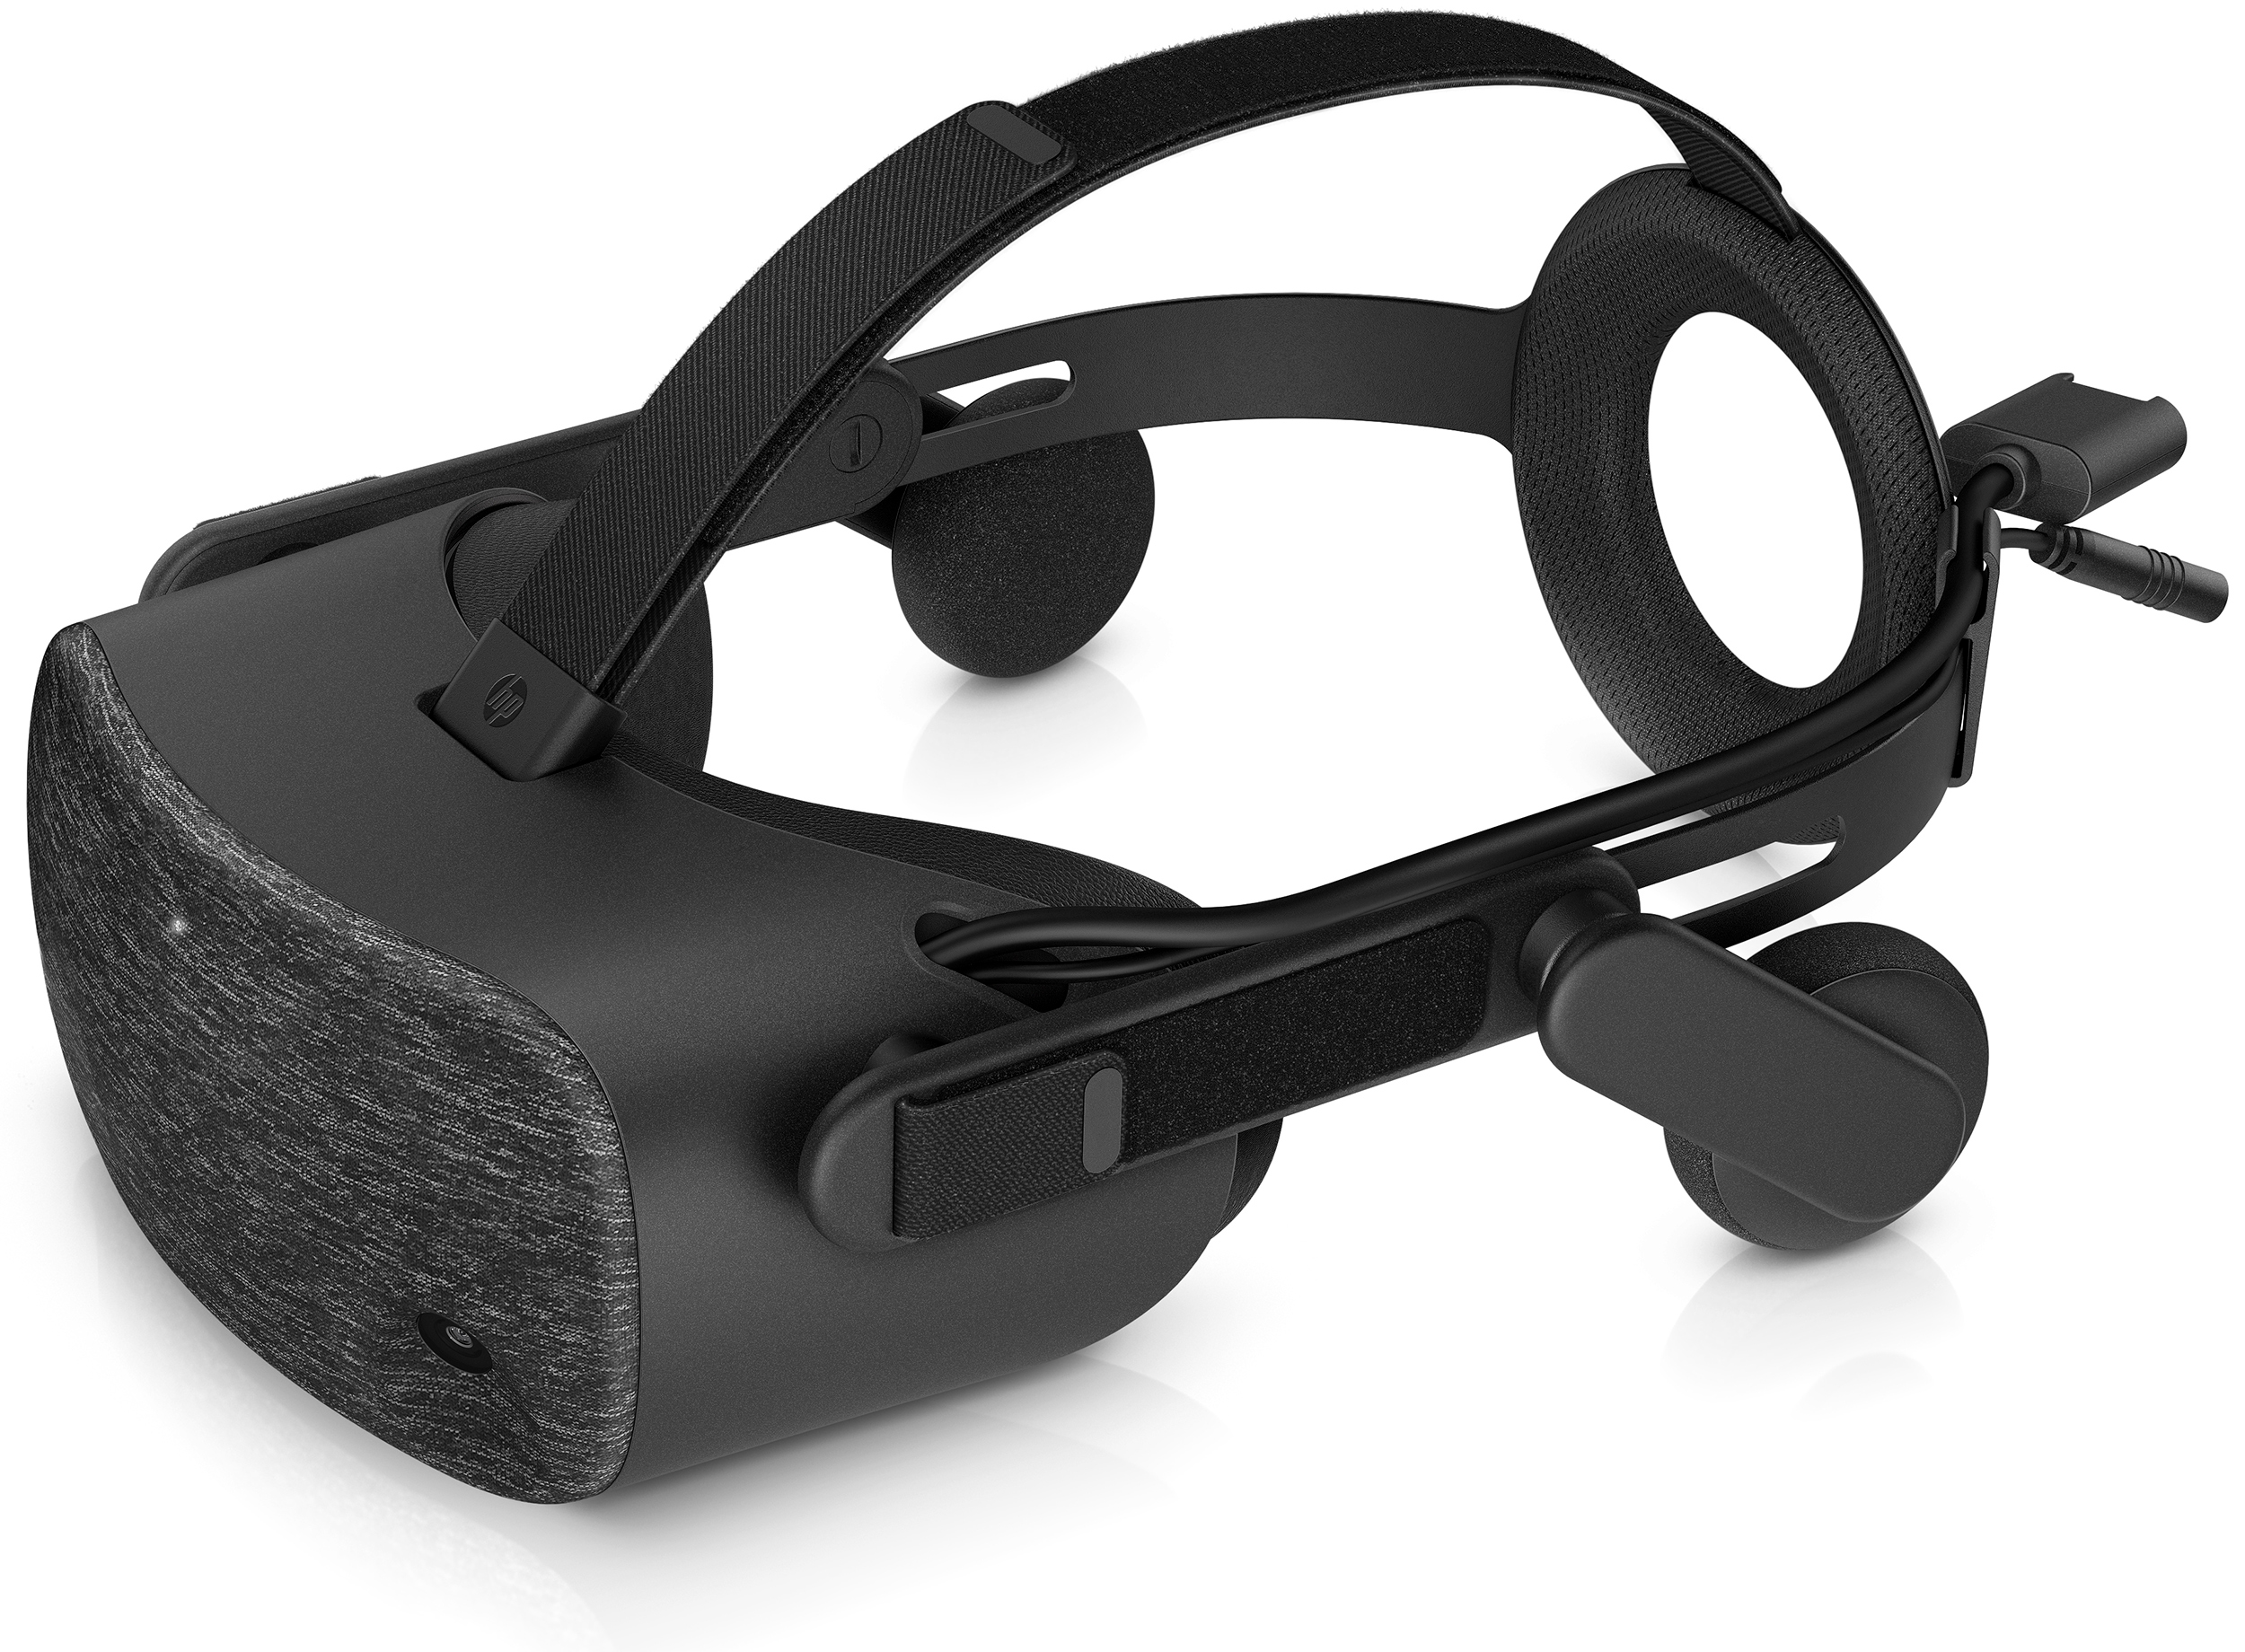 a009143c978 HP will start selling its Reverb VR headsets in late April. The consumer  version will cost  599